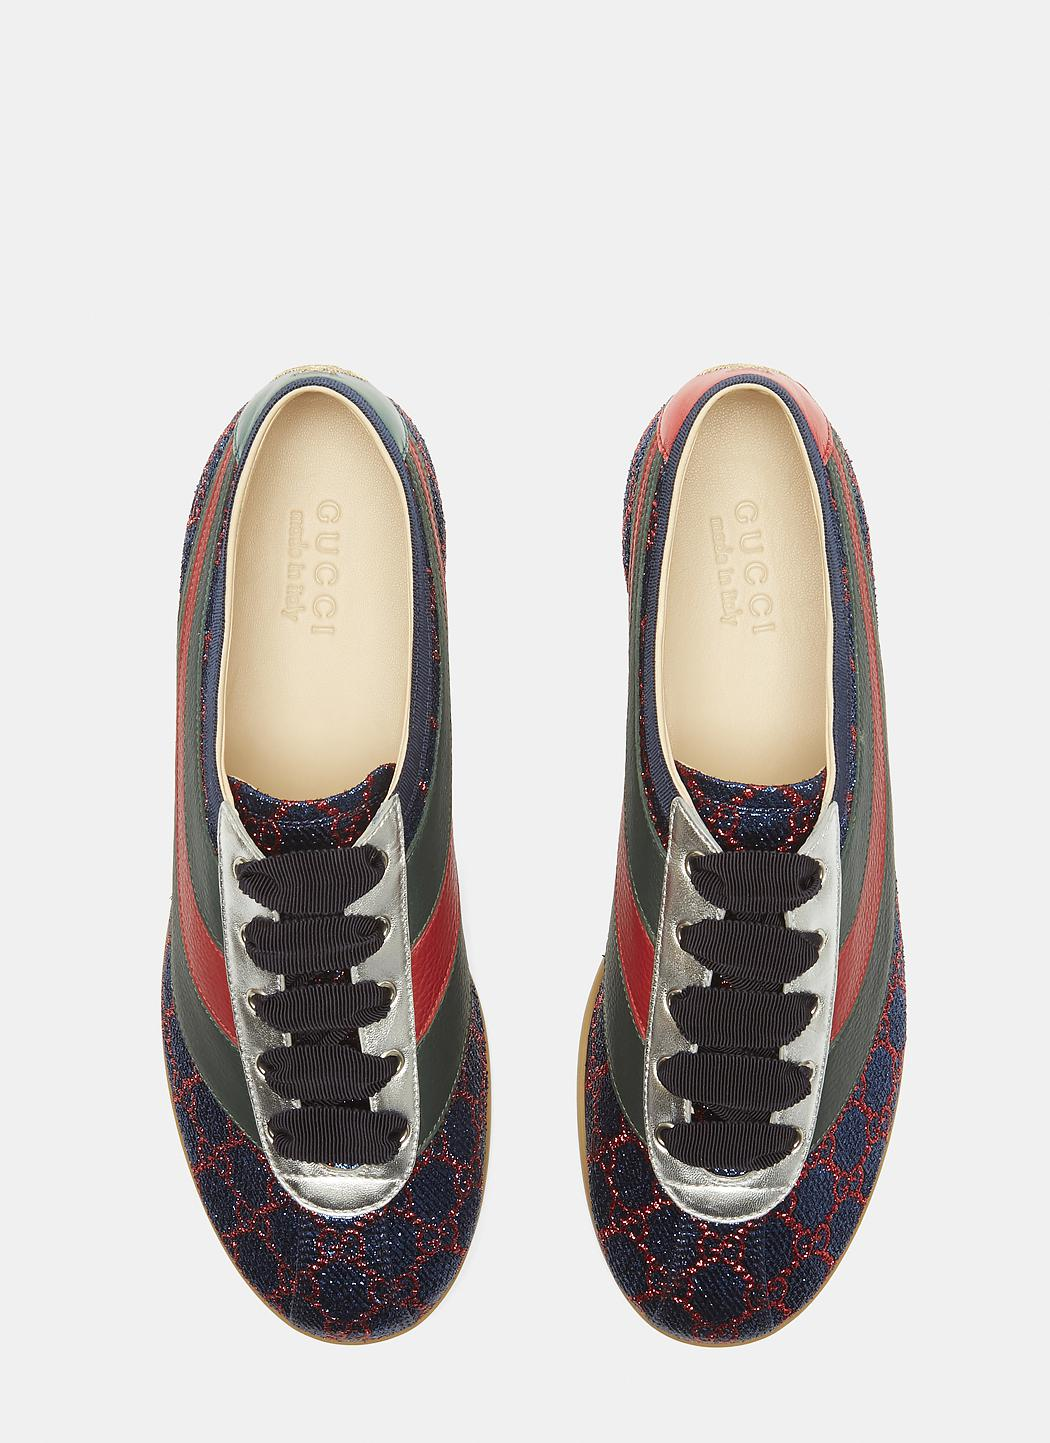 8cfa62d9882 Lyst - Gucci Falacer Lurex GG Sneaker With Web in Blue for Men